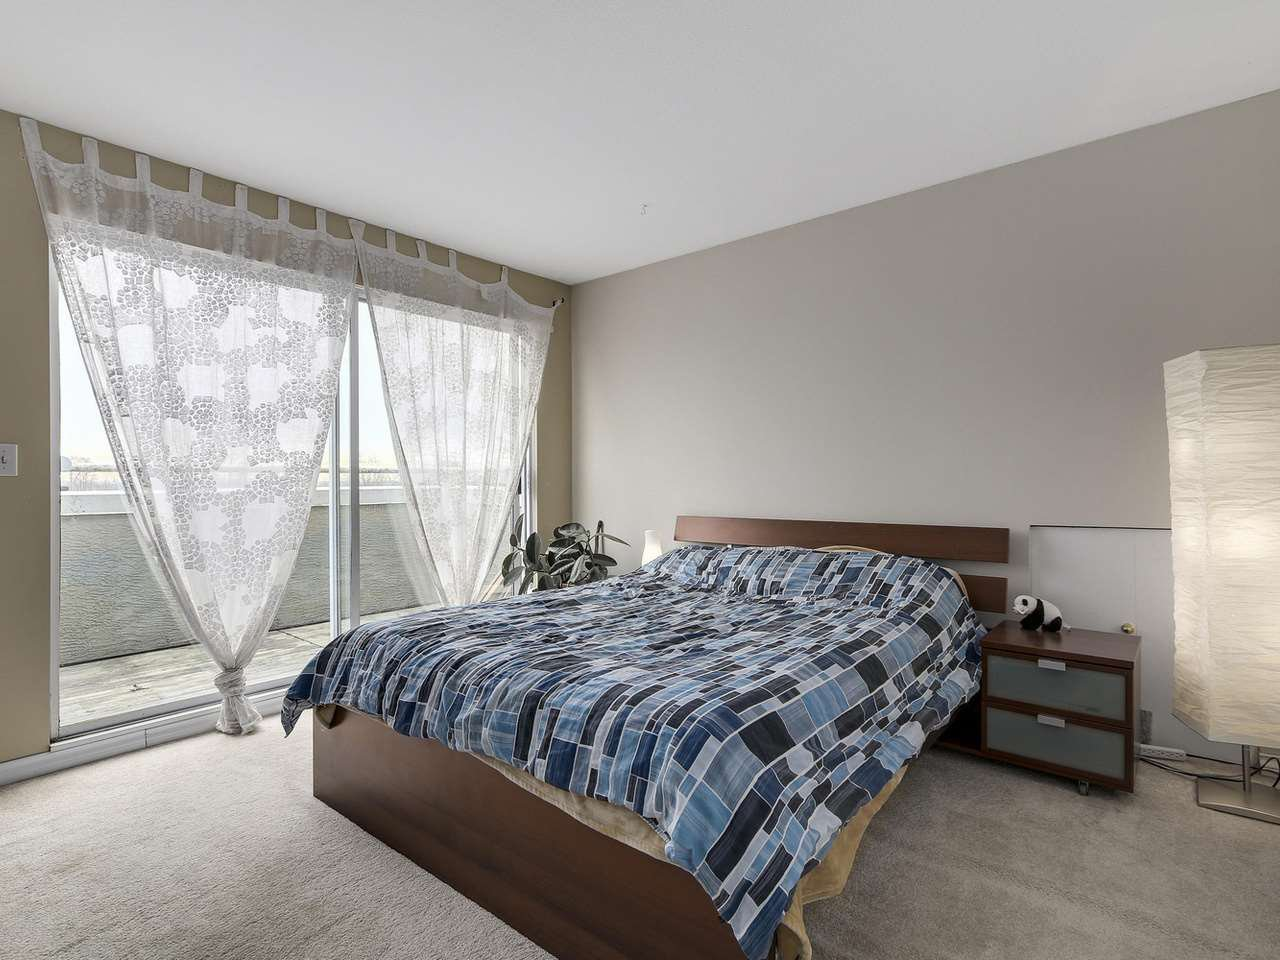 Photo 13: Photos: 2345 QUAYSIDE COURT in Vancouver: Fraserview VE Townhouse for sale (Vancouver East)  : MLS®# R2154138